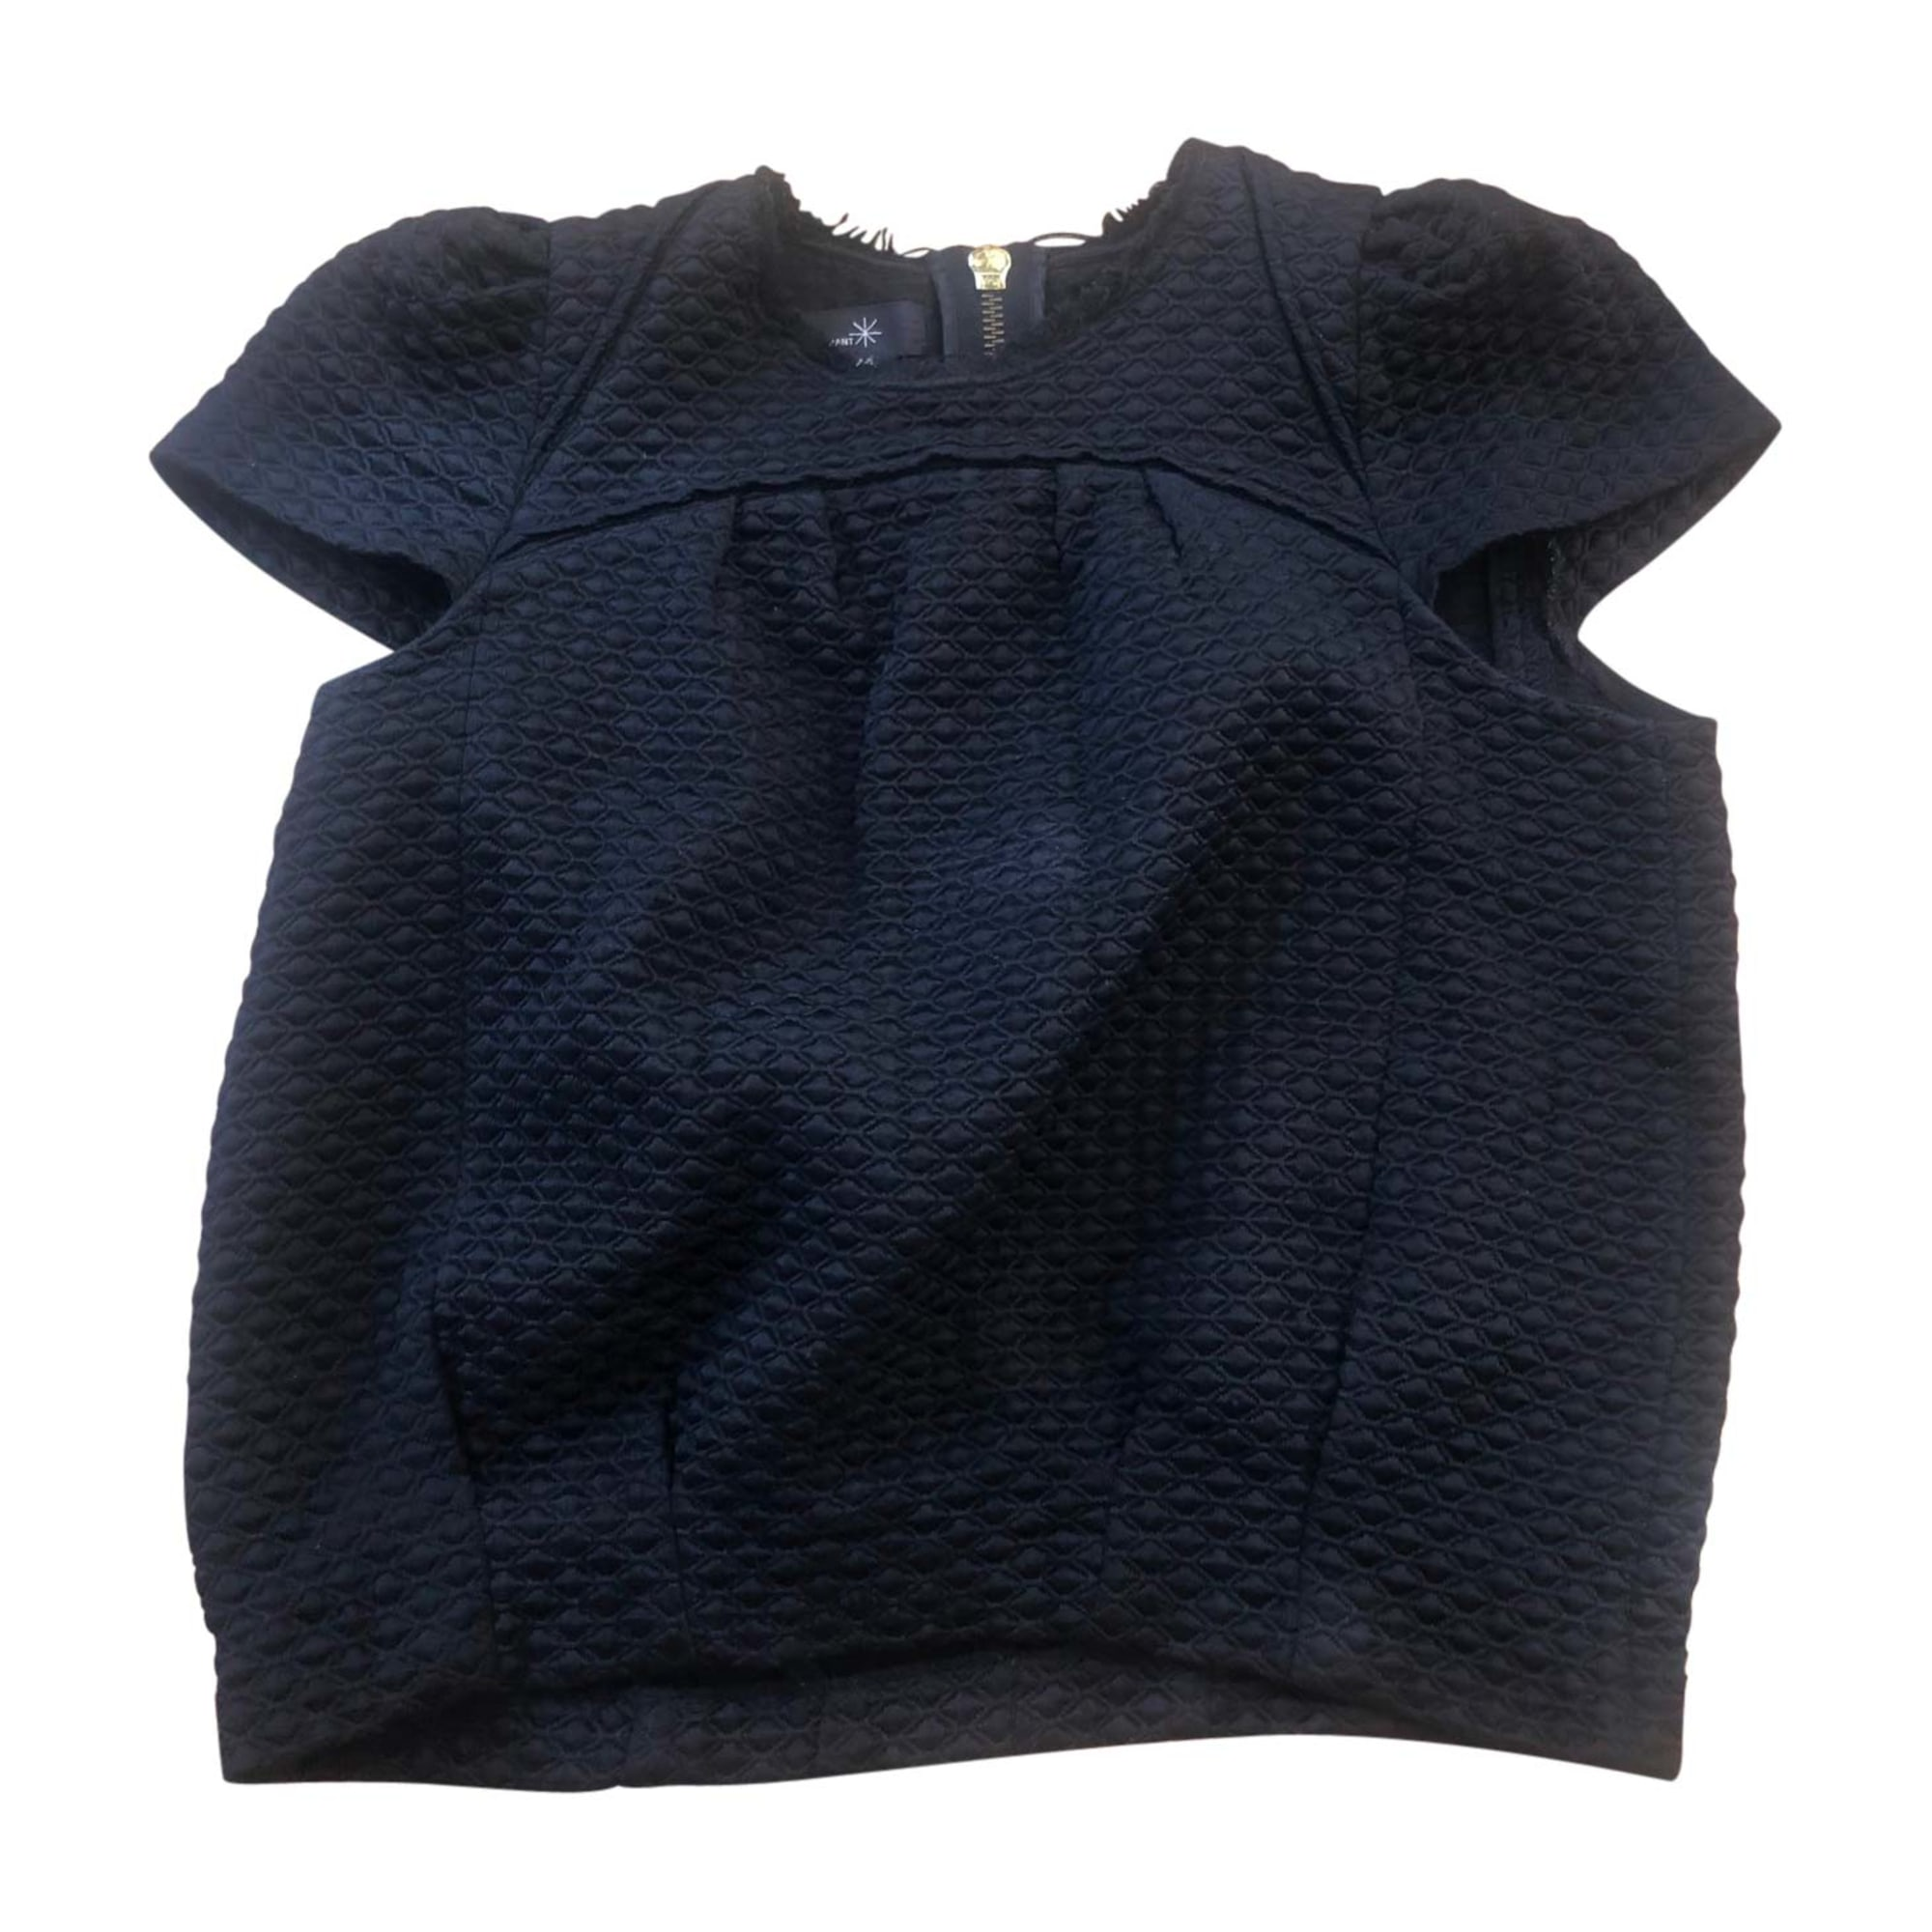 Top, T-shirt ISABEL MARANT Black